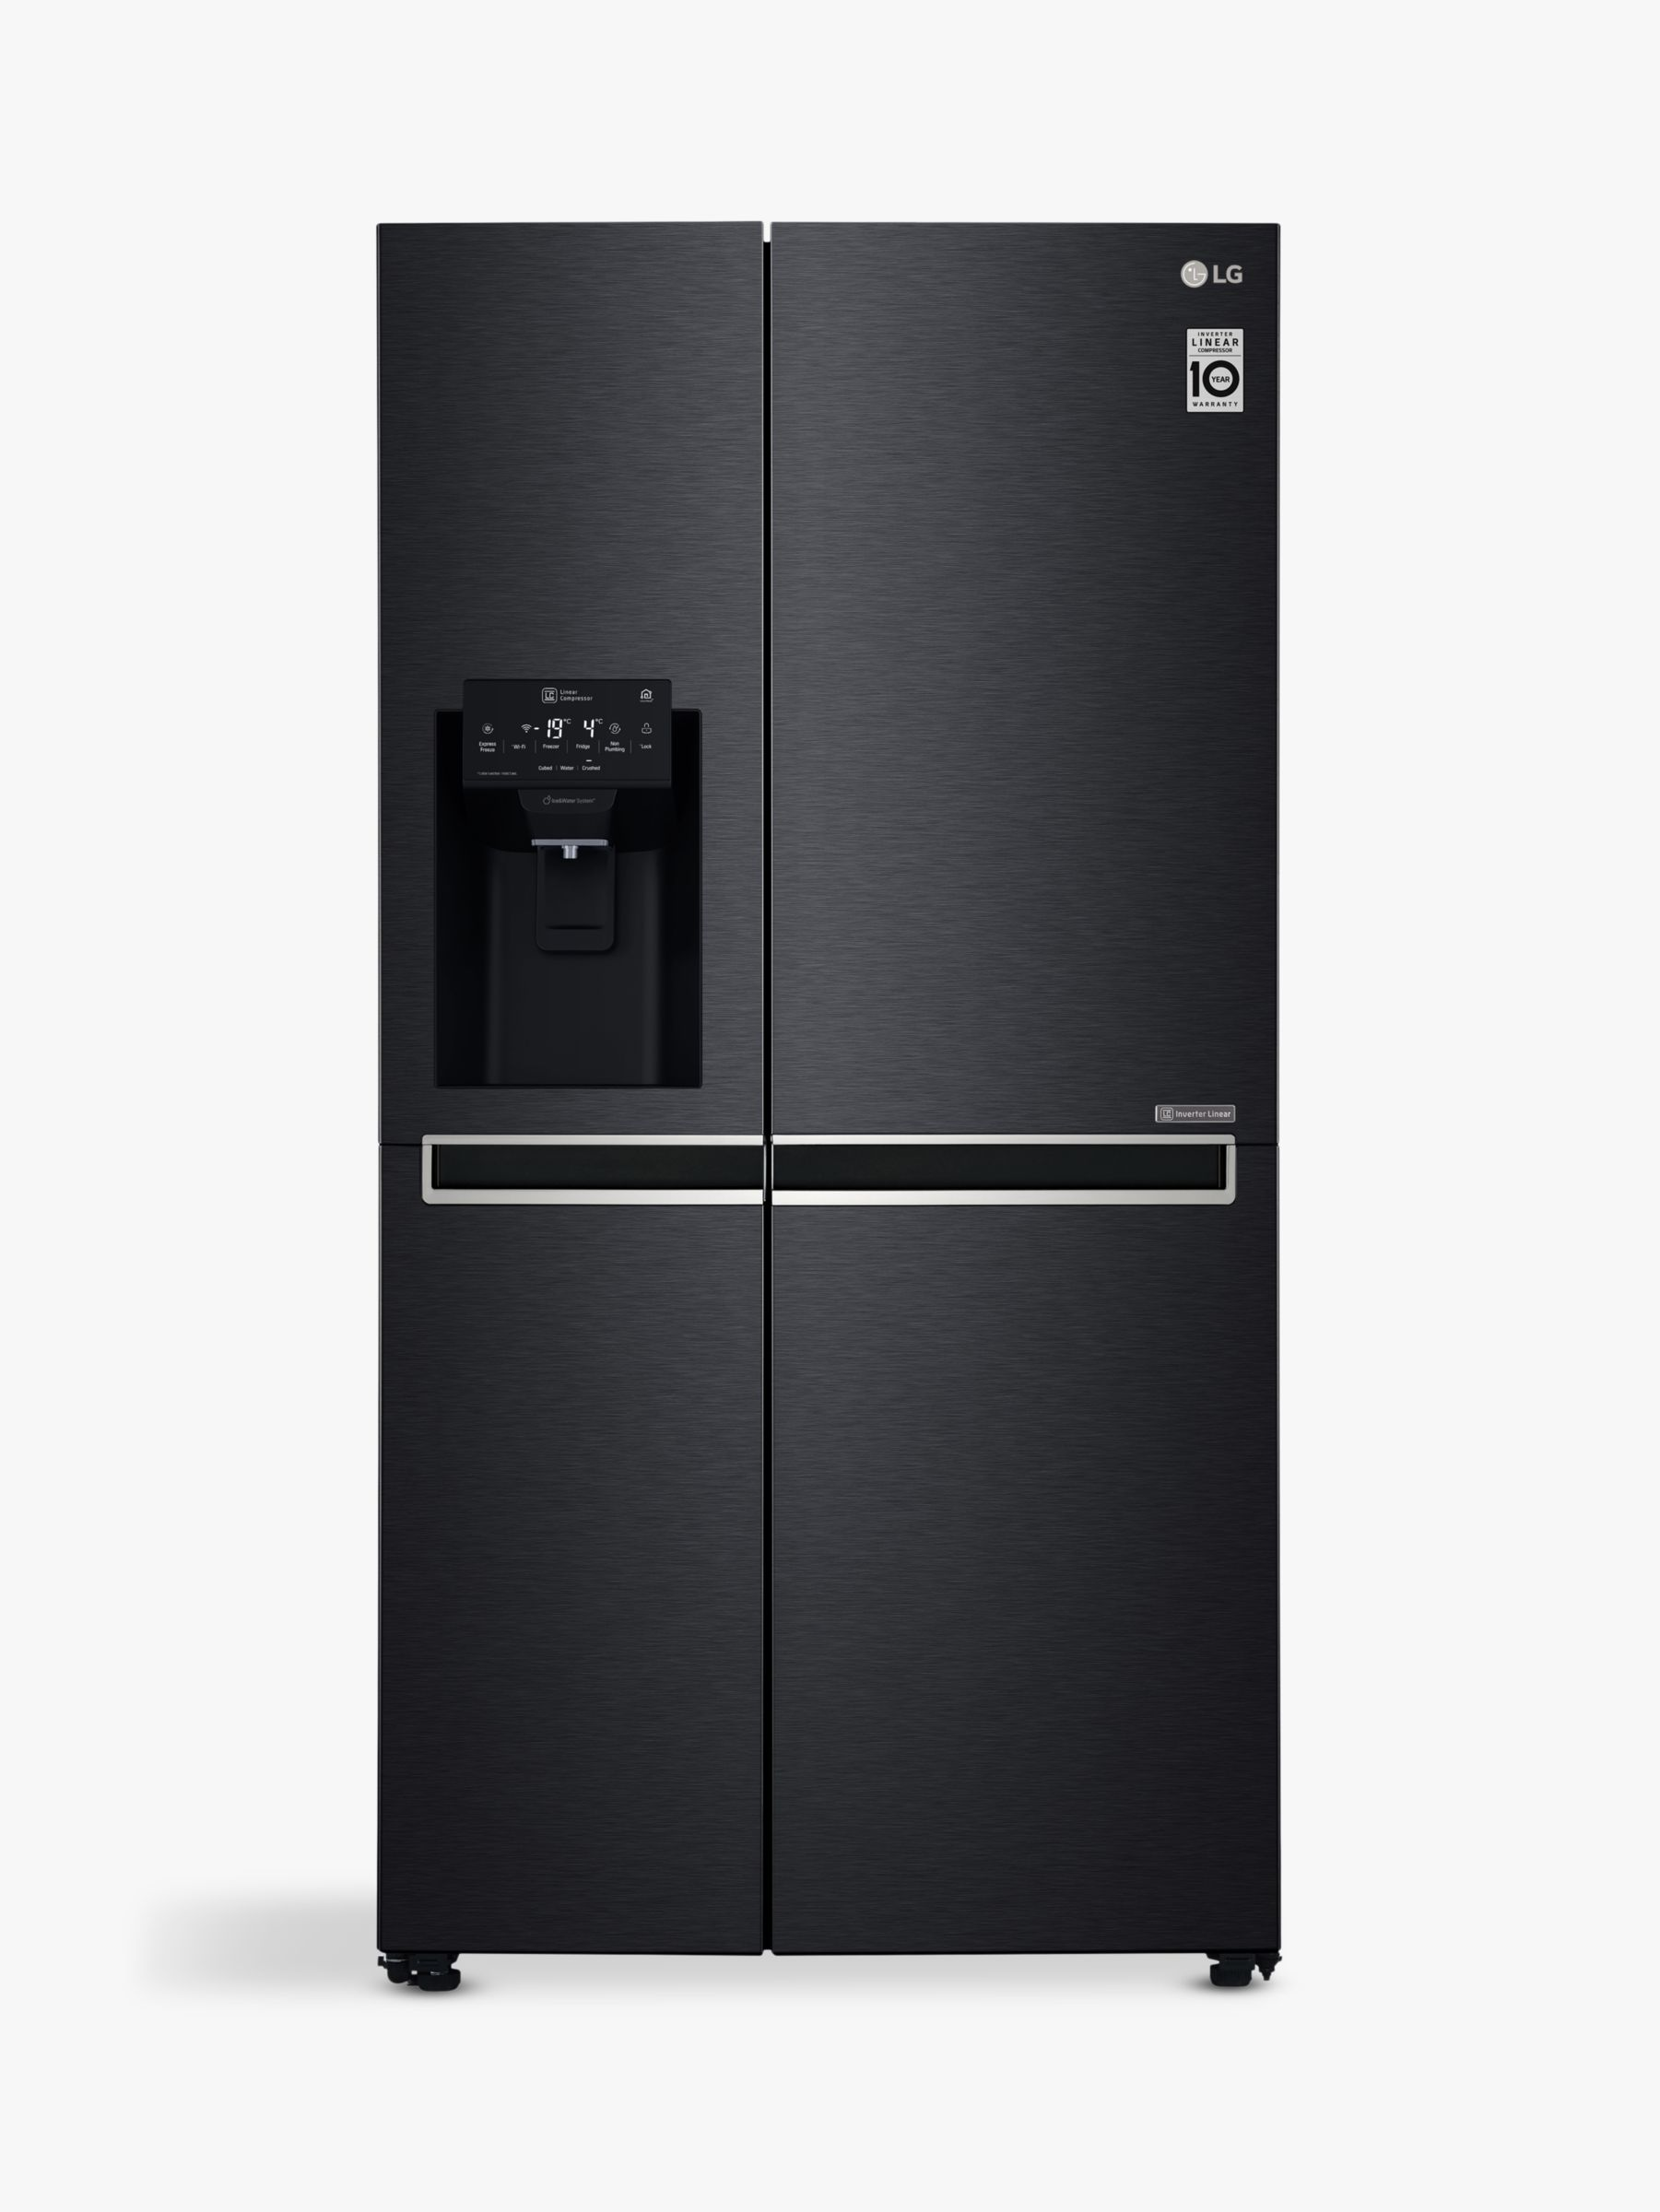 LG LG GSL761MCXV American Style Freestanding Fridge Freezer, A+ Energy Rating, 91.2cm Wide, Non-Plumbed Water and Ice Dispenser, Matte Black